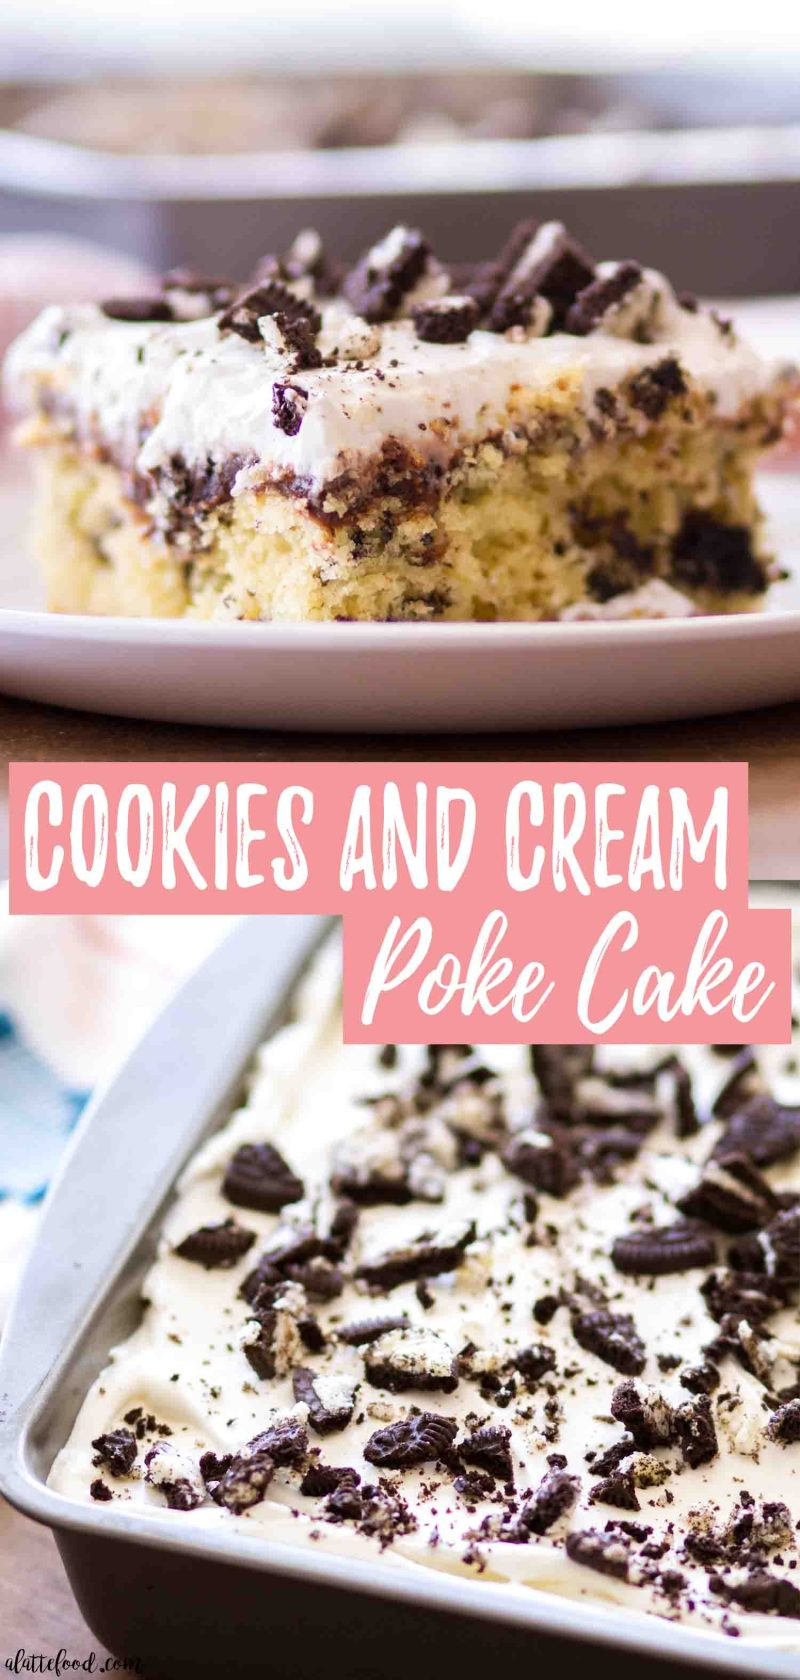 Homemade Oreo Cookies and Cream Poke Cake recipe makes the best dessert.